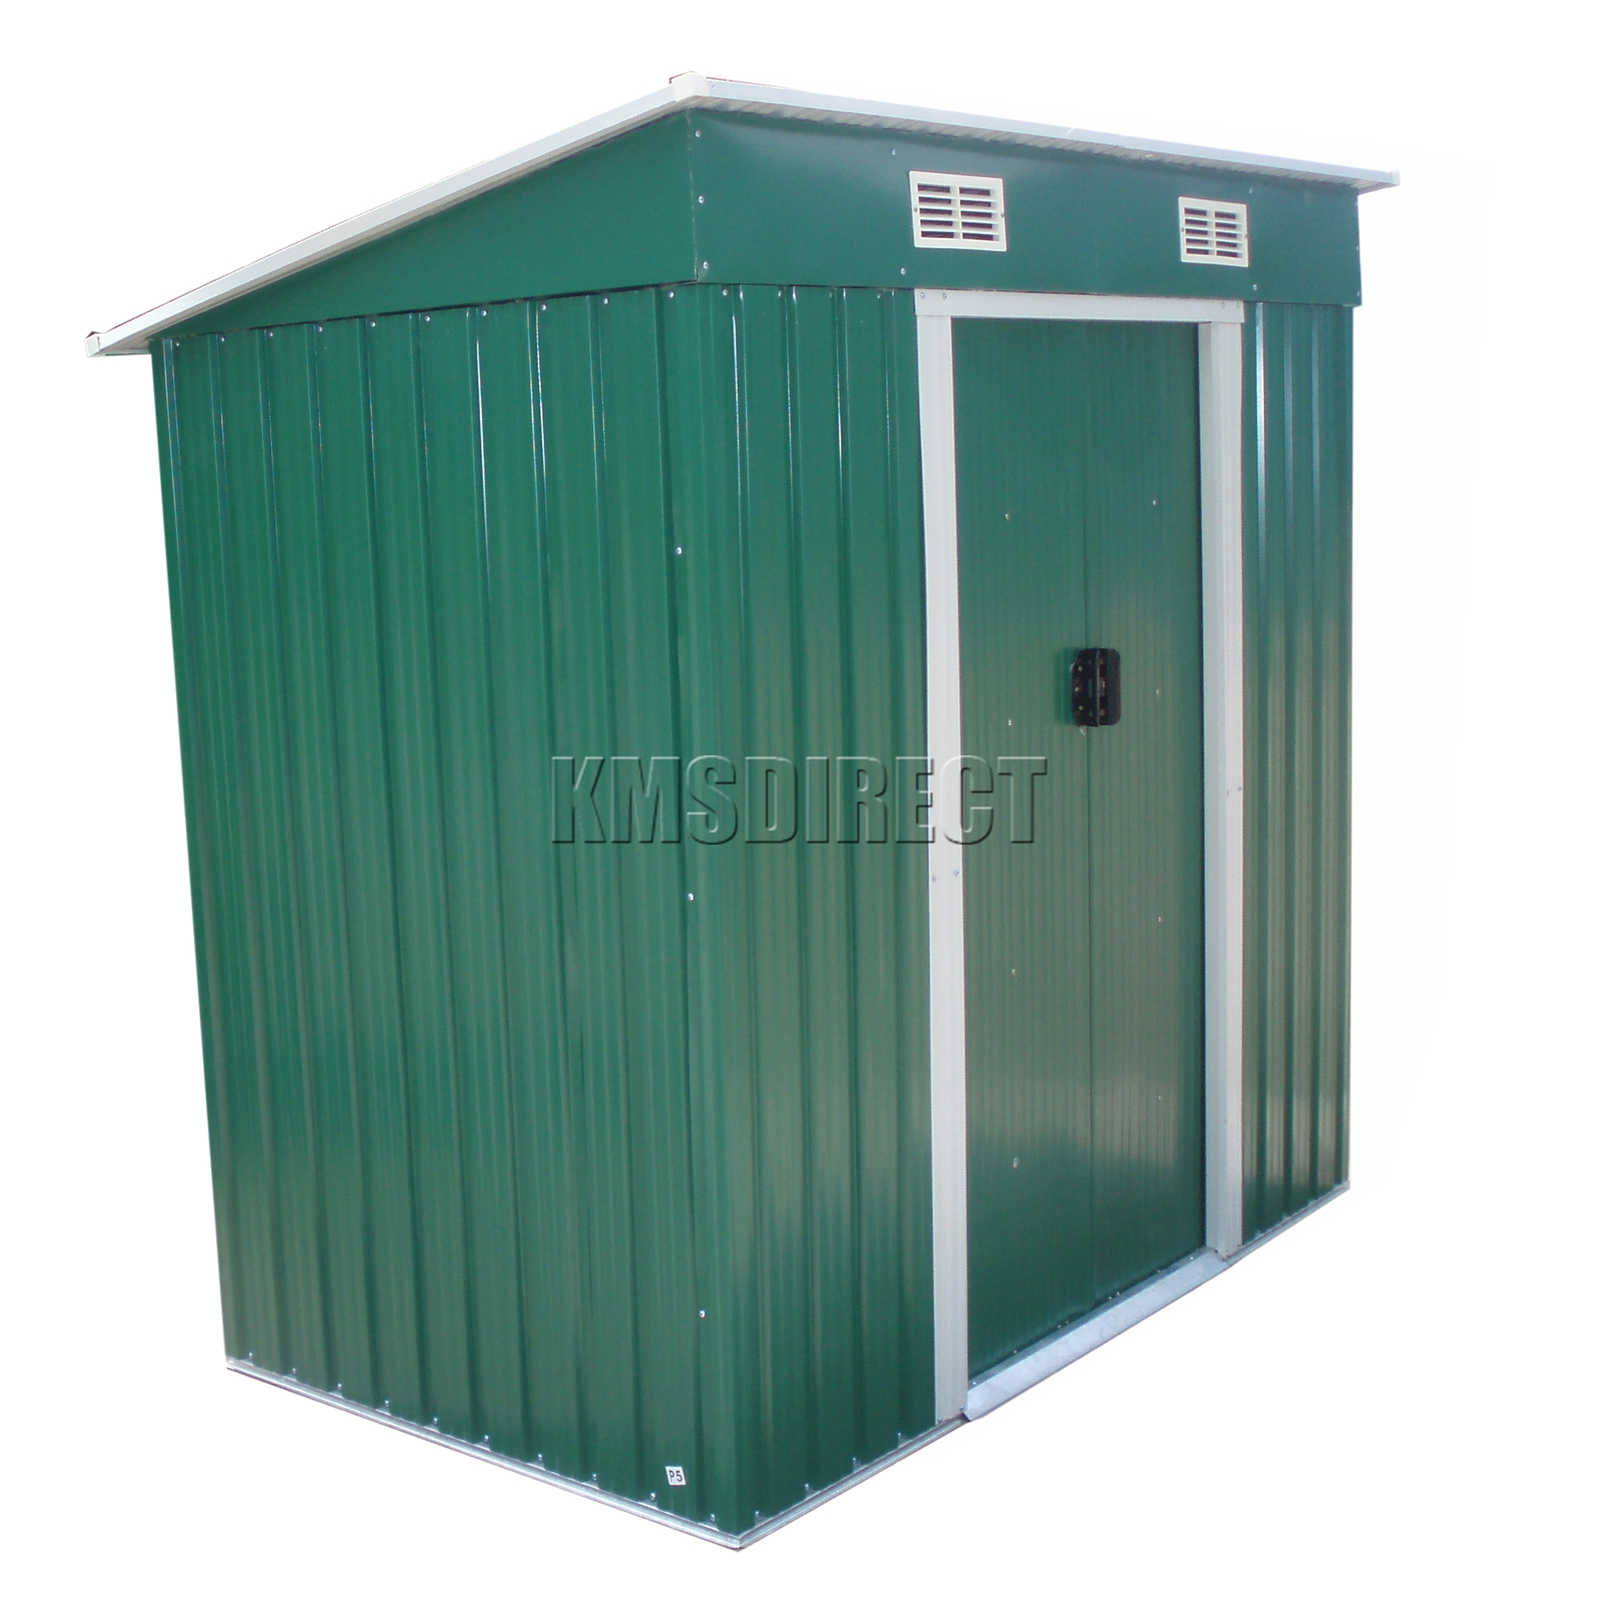 Foxhunter green garden shed metal pent roof 4ft x 8ft for Garden shed 4 x 2